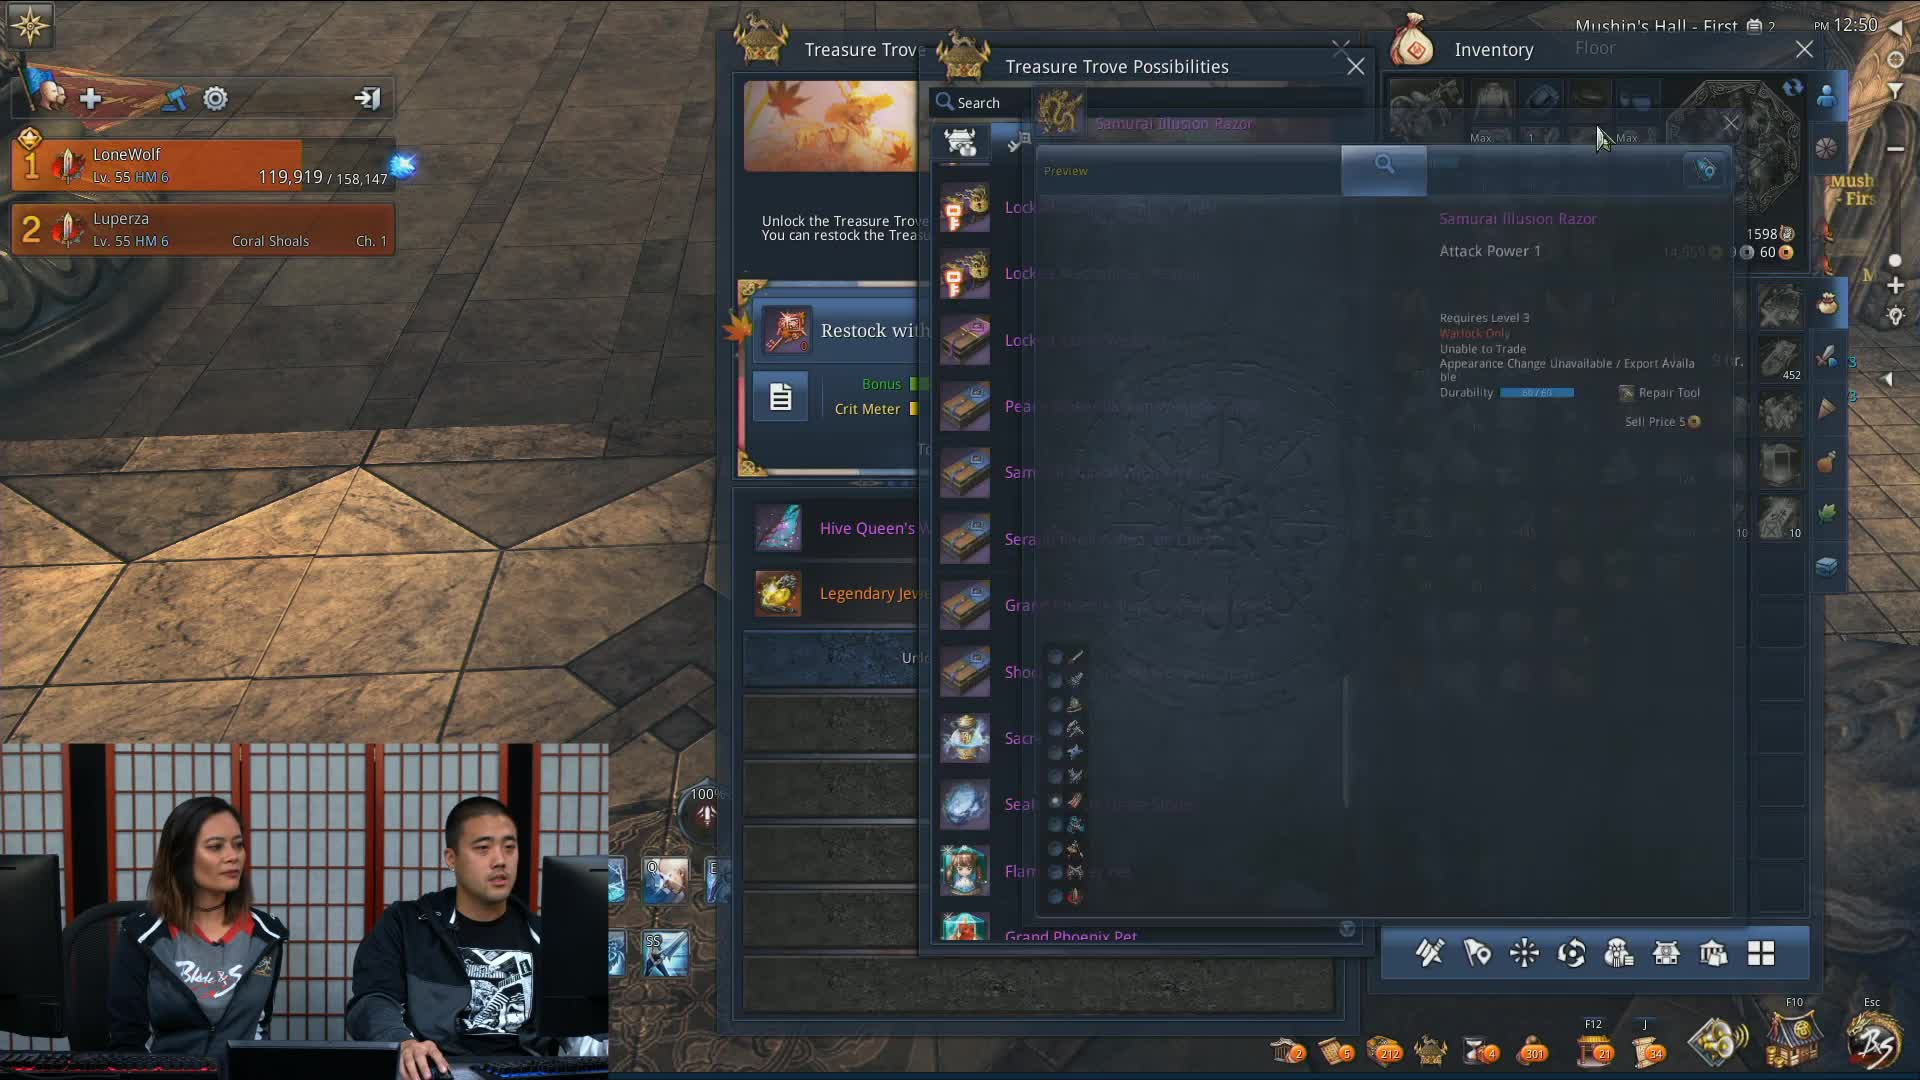 BladeandSoul - Seraph weapon illusions! - Twitch